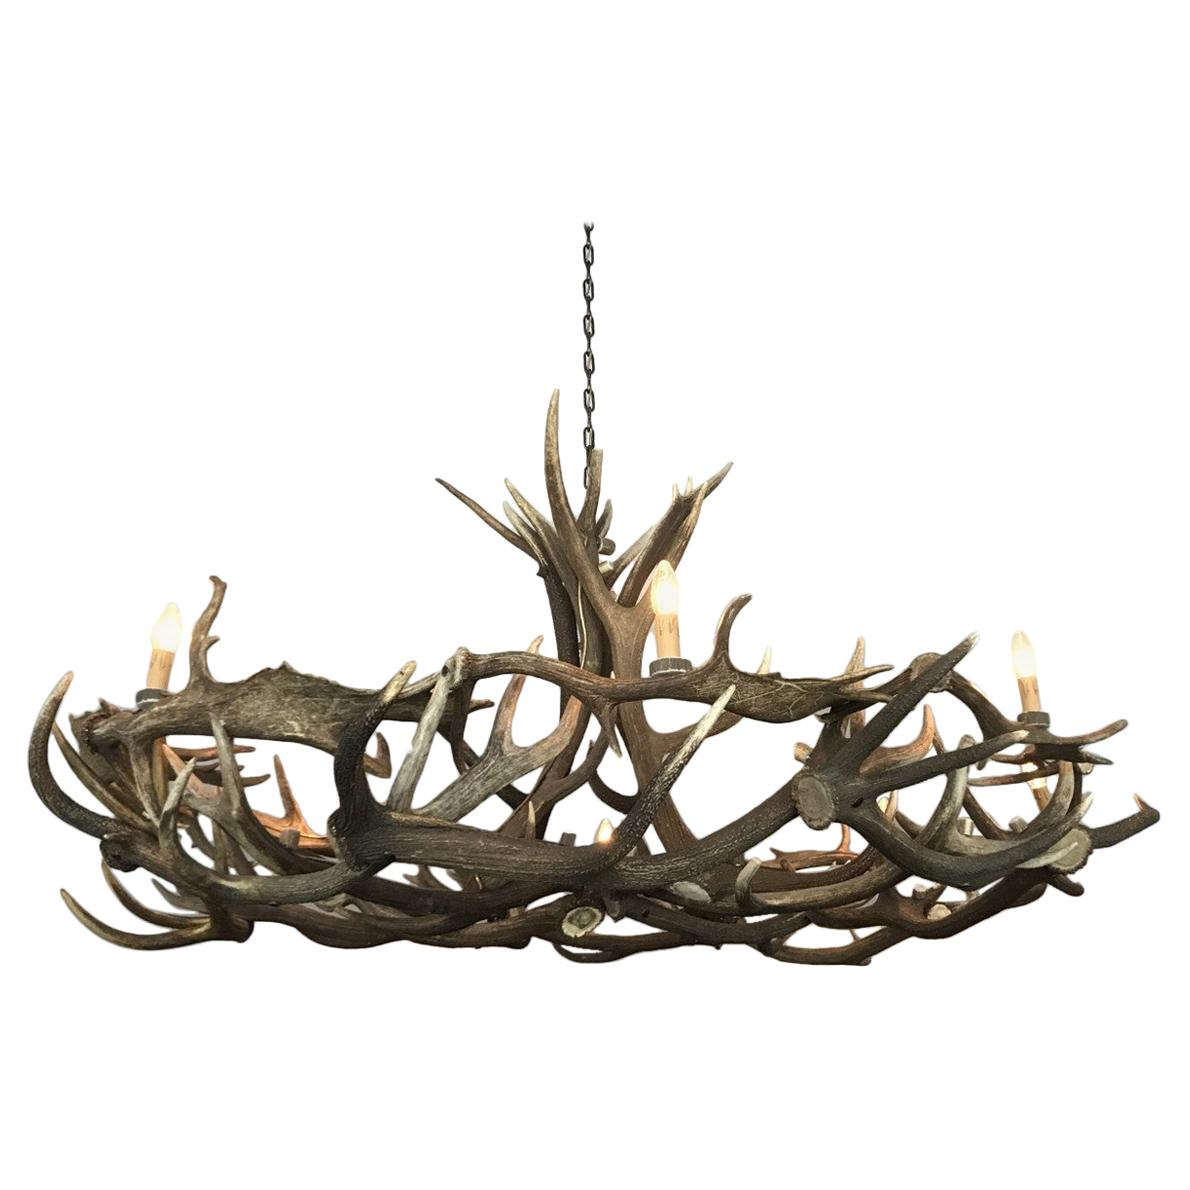 Antler Furniture - 314 For Sale at 1stdibs